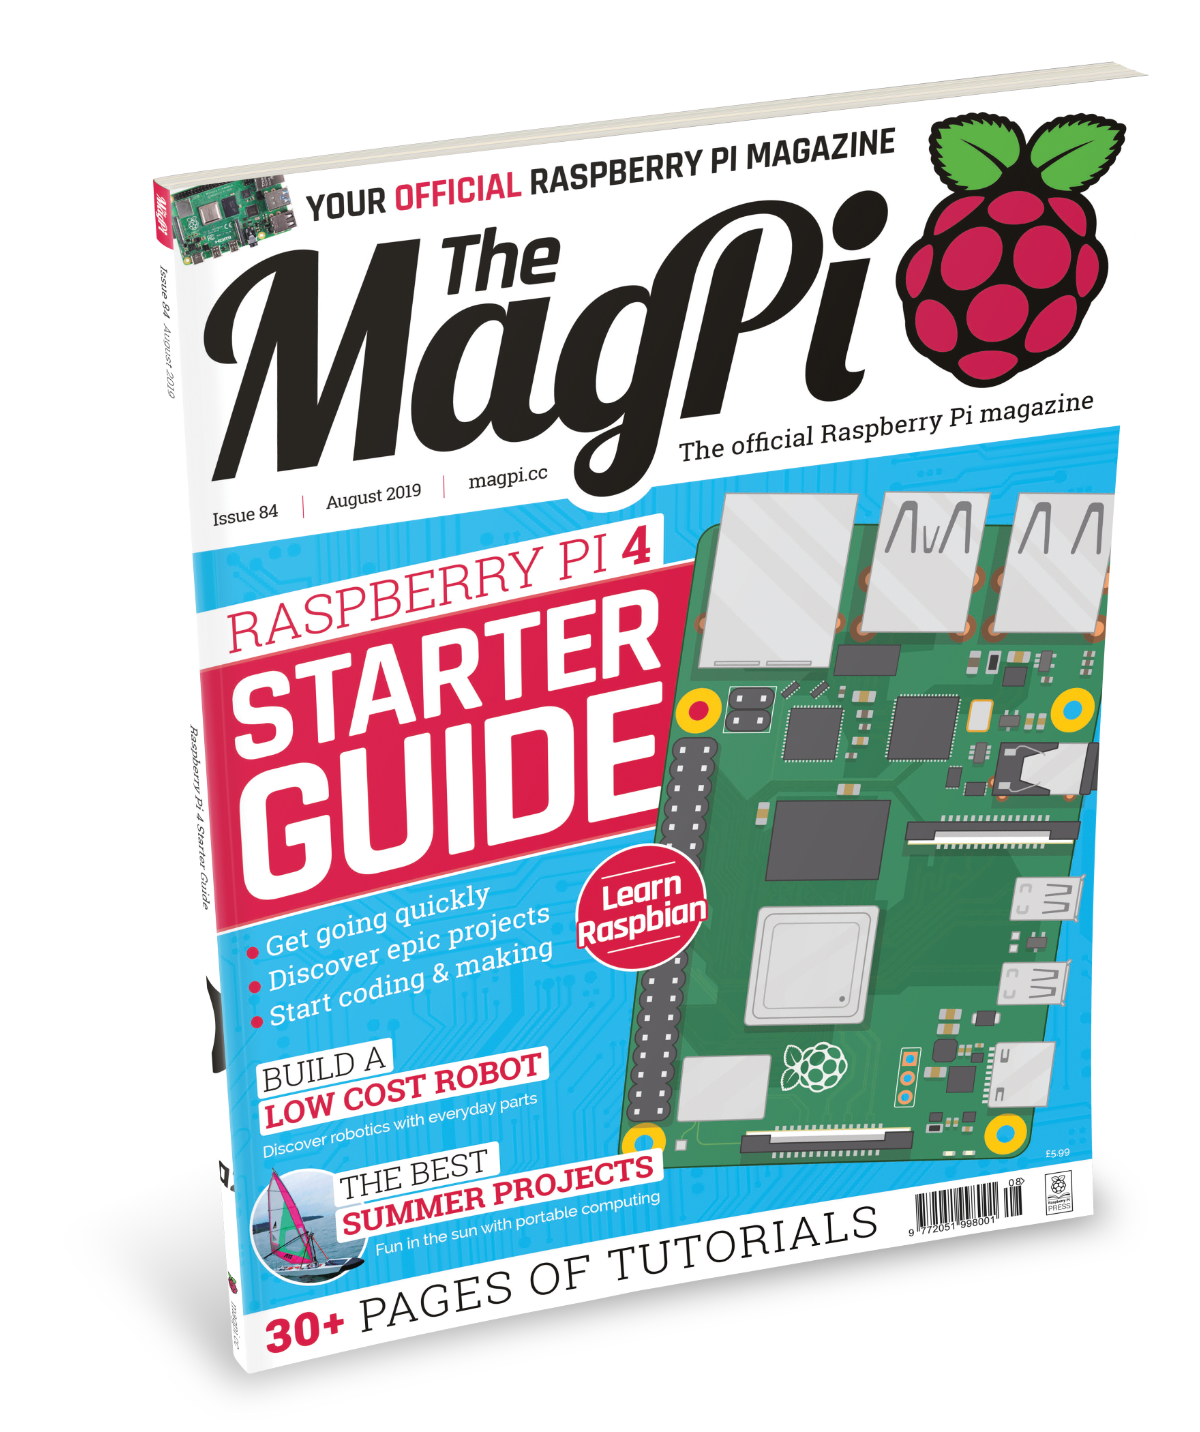 The MagPi Magazine - The official Raspberry Pi magazineThe MagPi